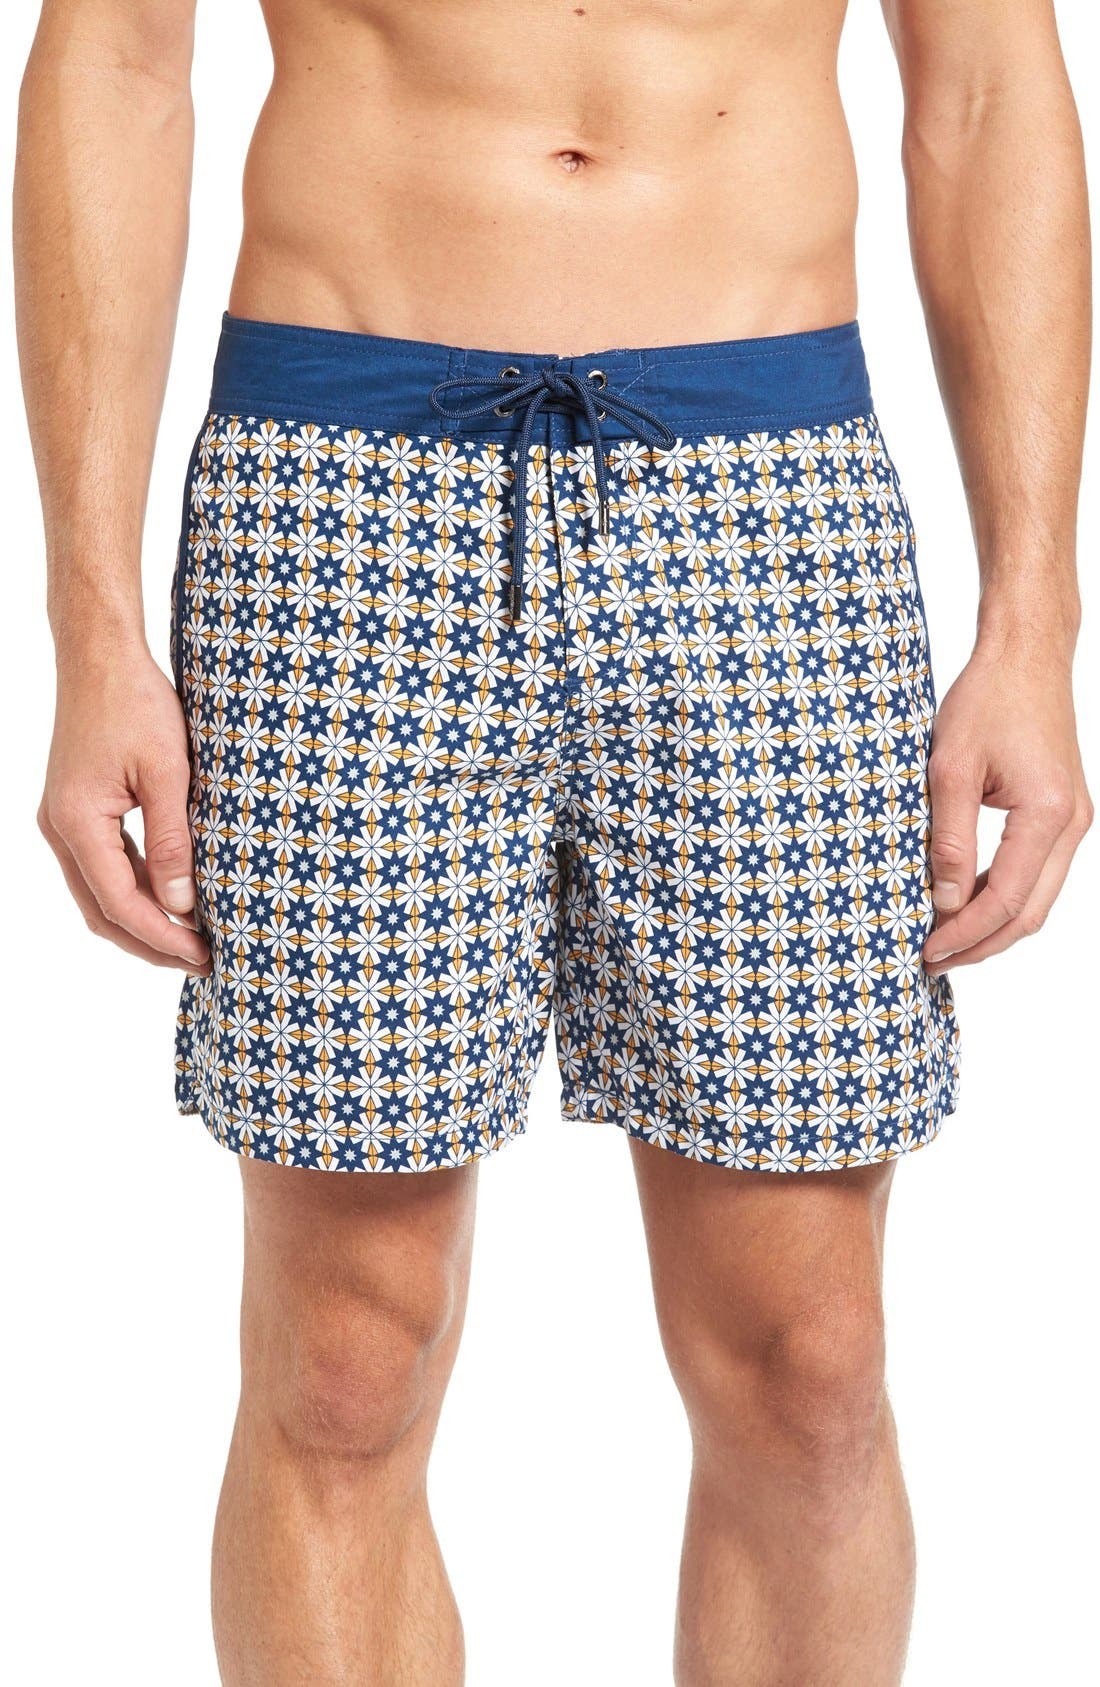 Star Tile Print Board Shorts,                         Main,                         color, Orange